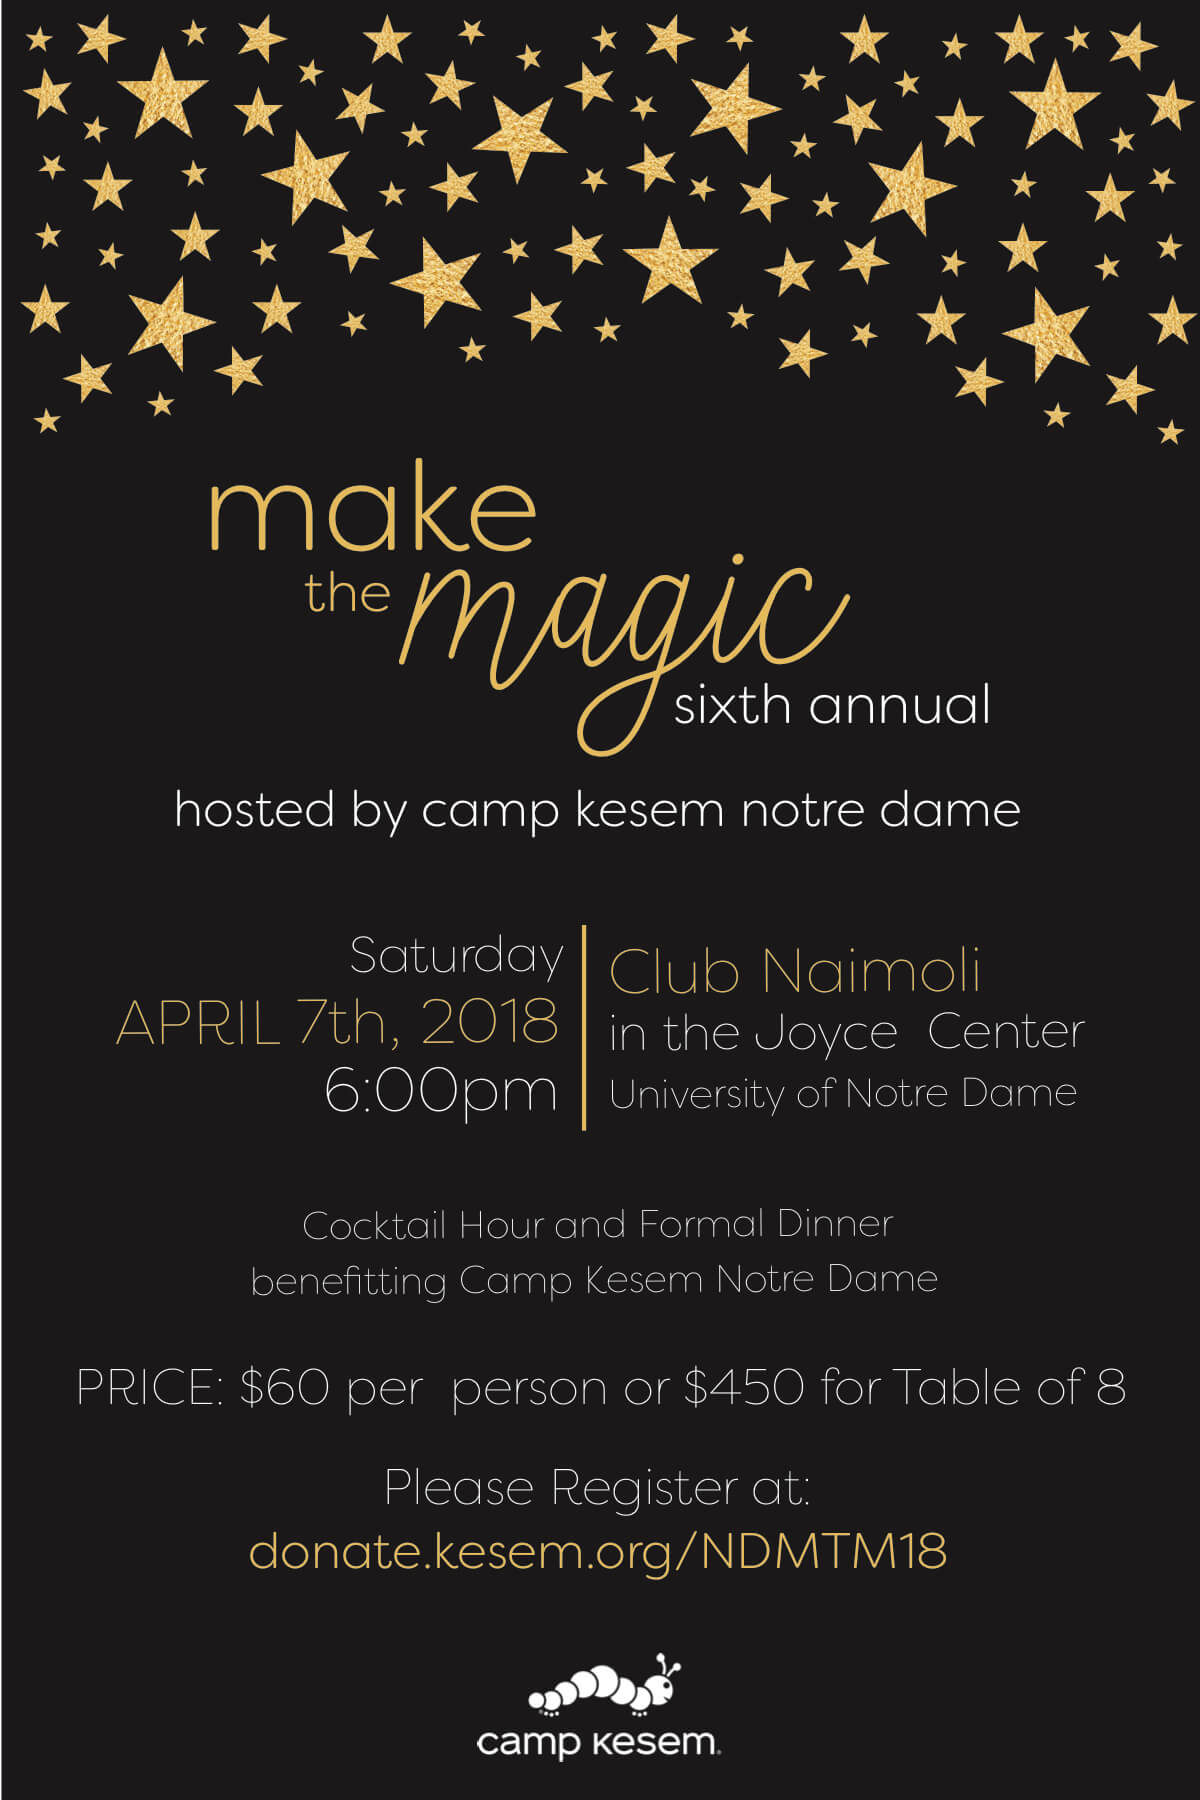 Sixth Annual Make the Magic Event